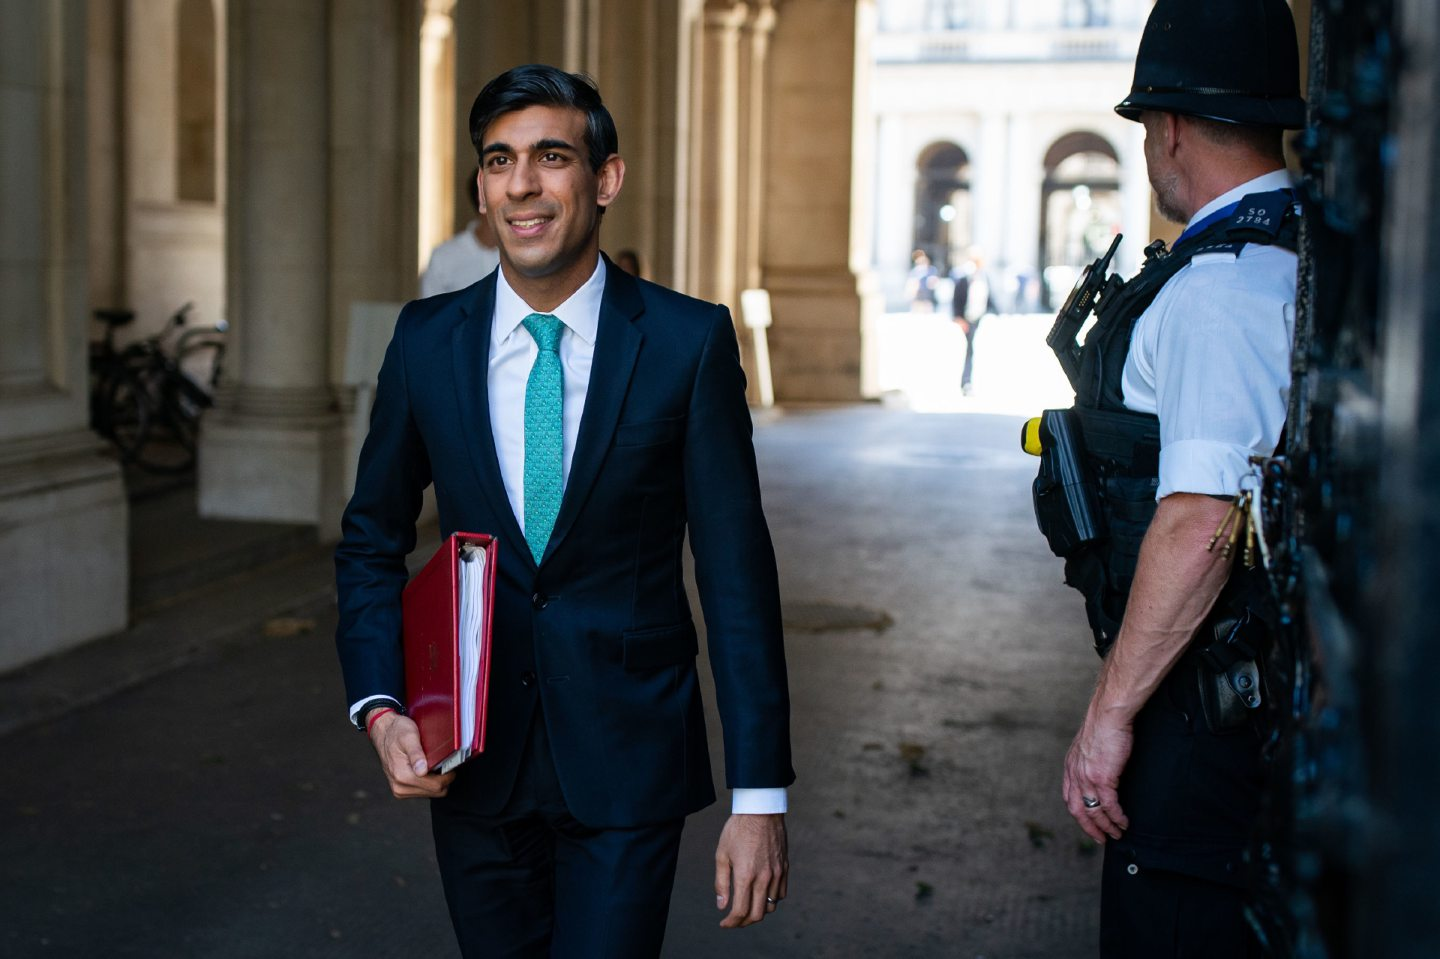 Chancellor of the Exchequer Rishi Sunak .